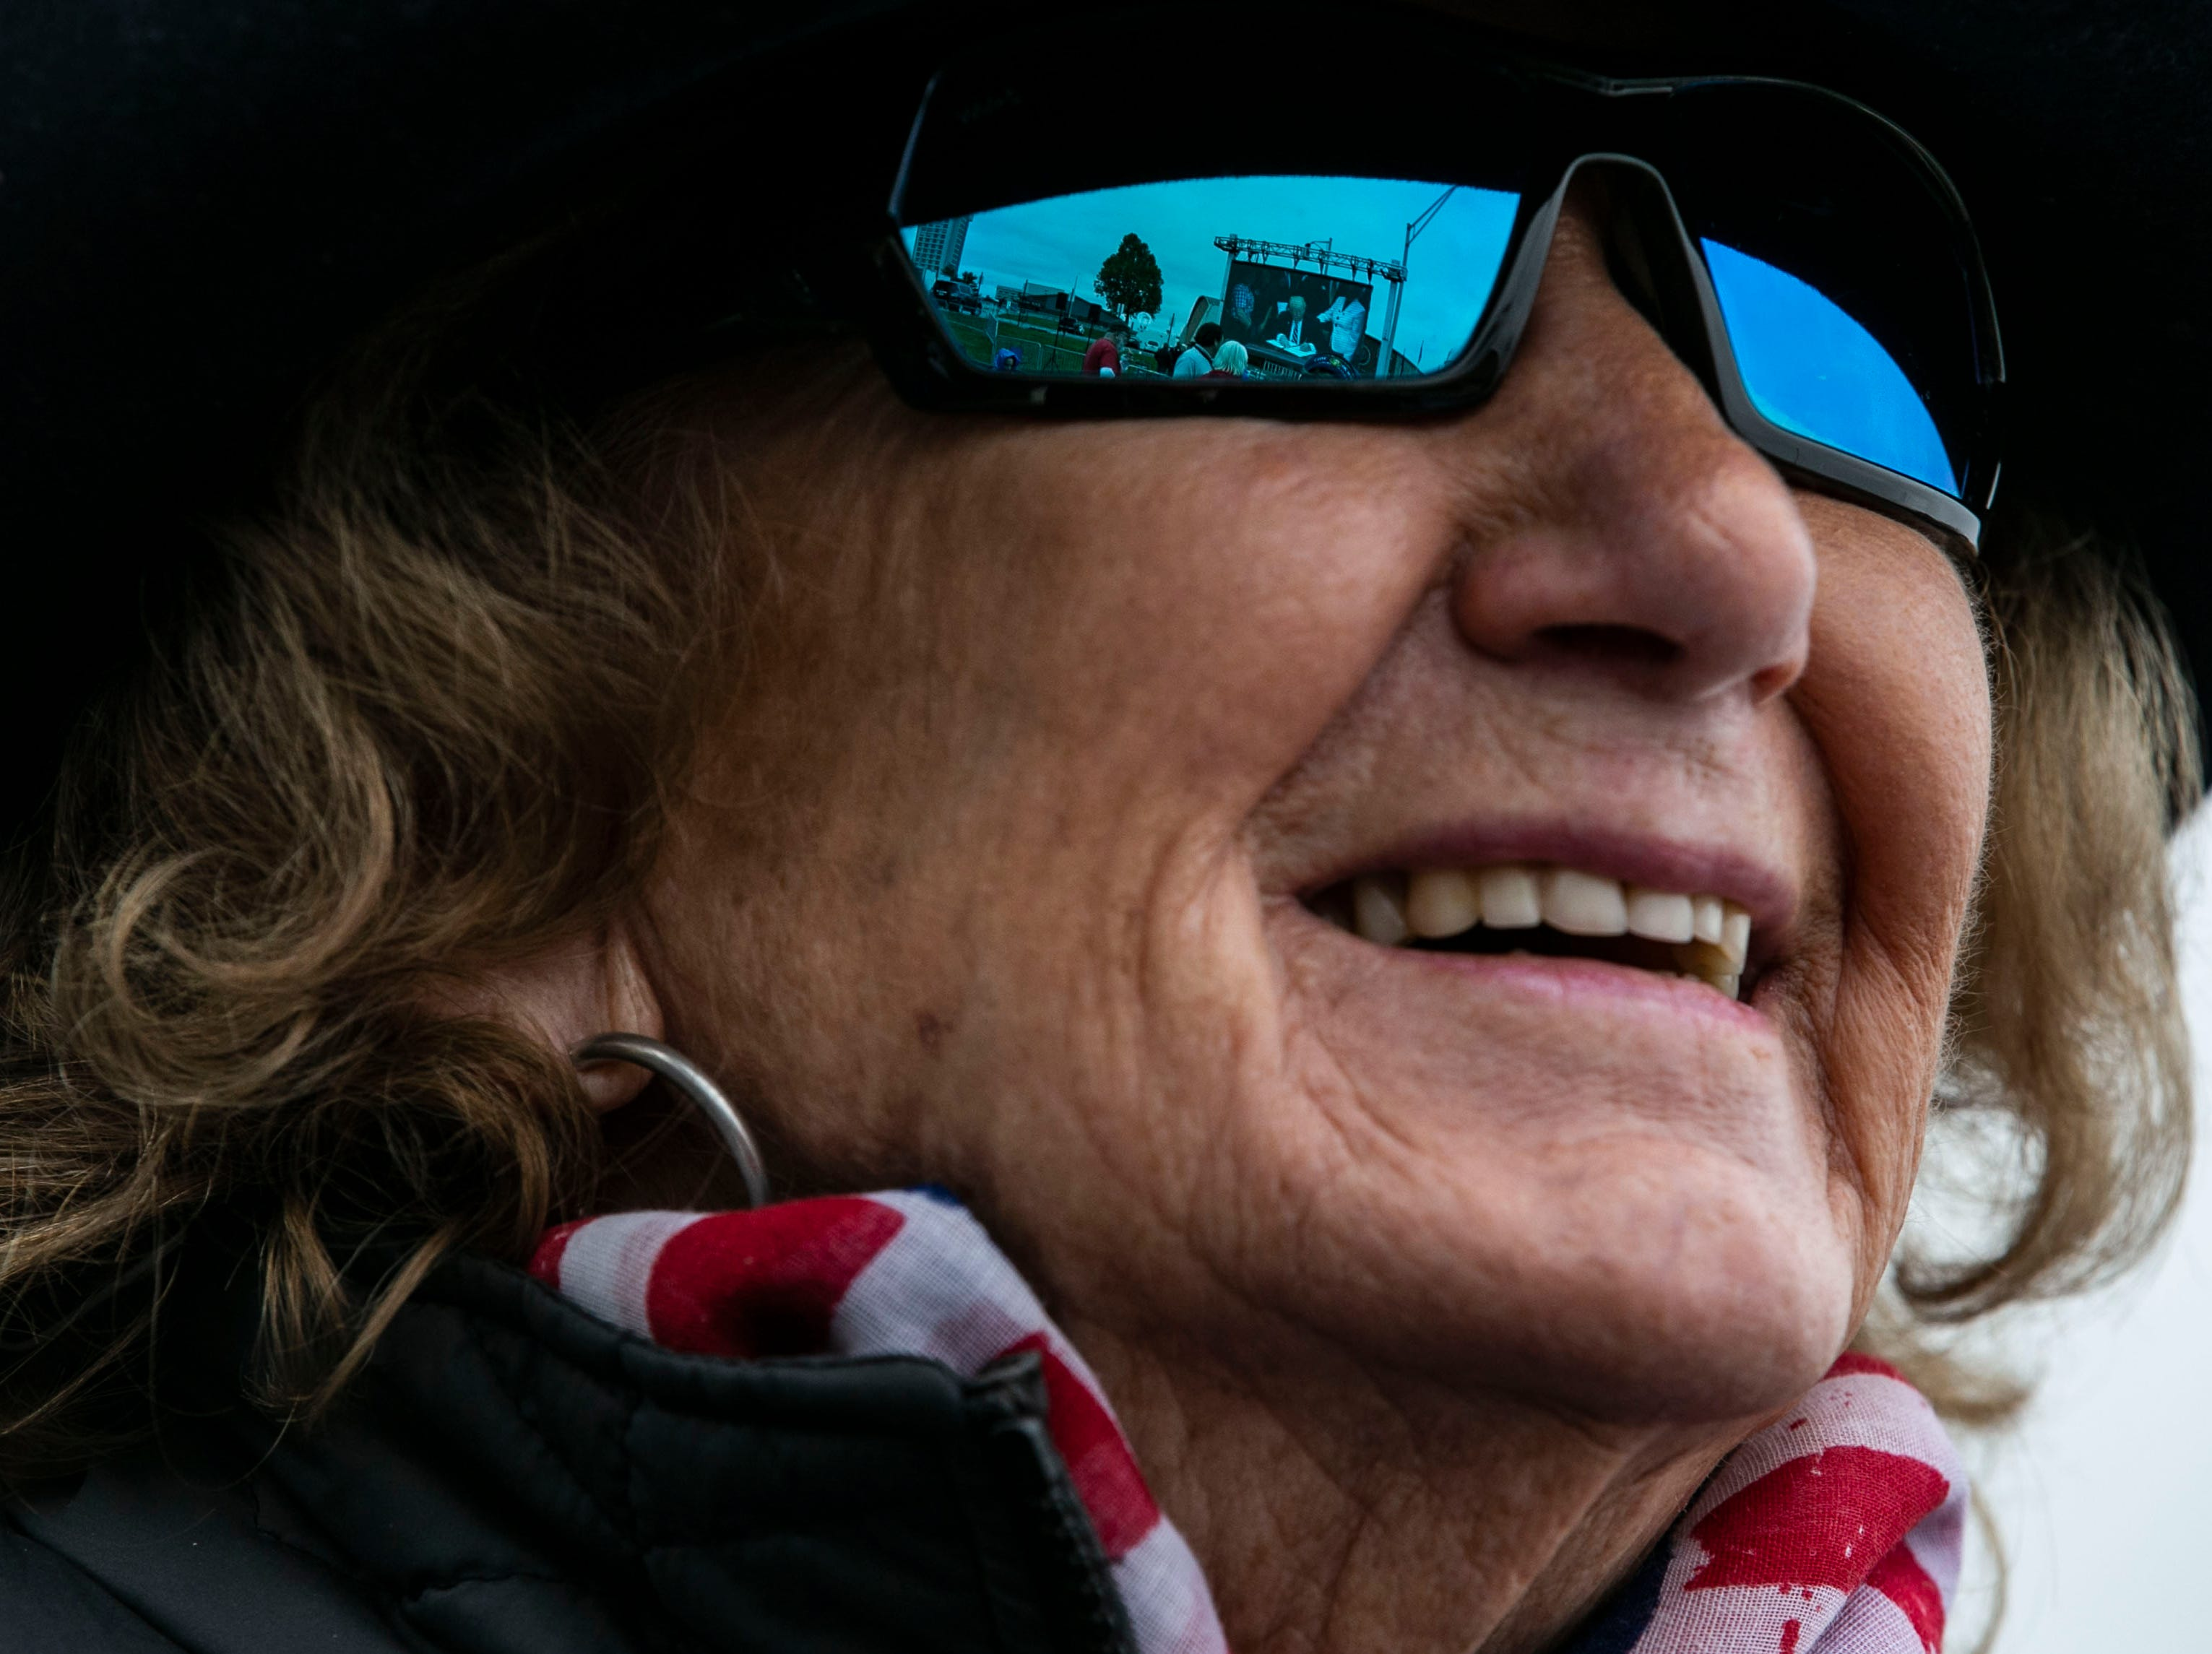 Mary Adkins of Ironton, Ohio, 80, didn't mind the wait in a parking lot outside the Alumni Coliseum for the speech of President Donald Trump later Saturday night.